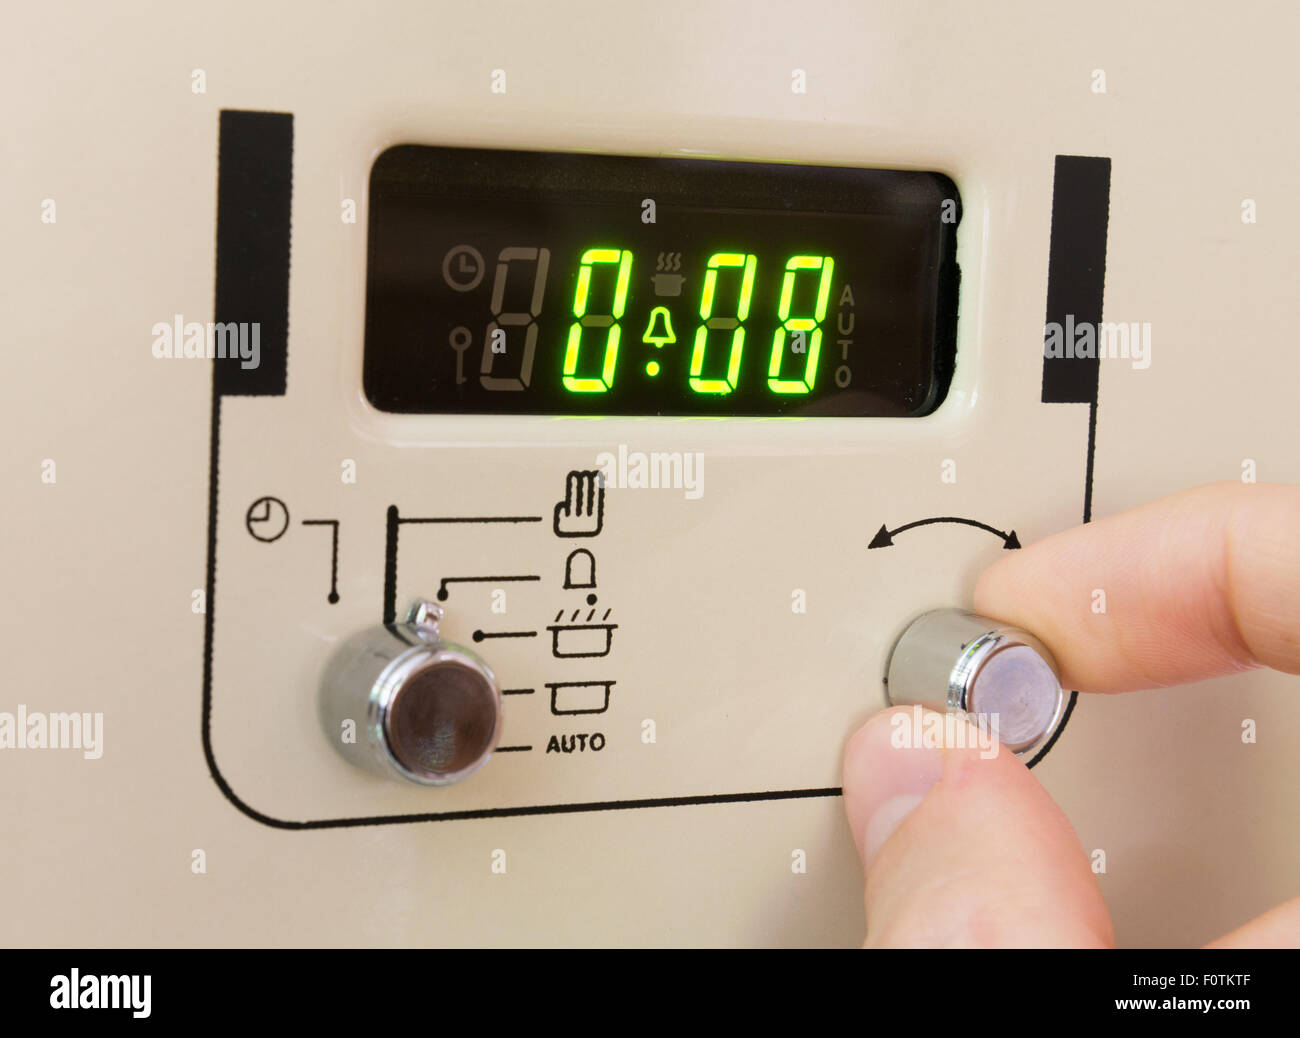 Setting a cooker timer to 8 minutes - Stock Image